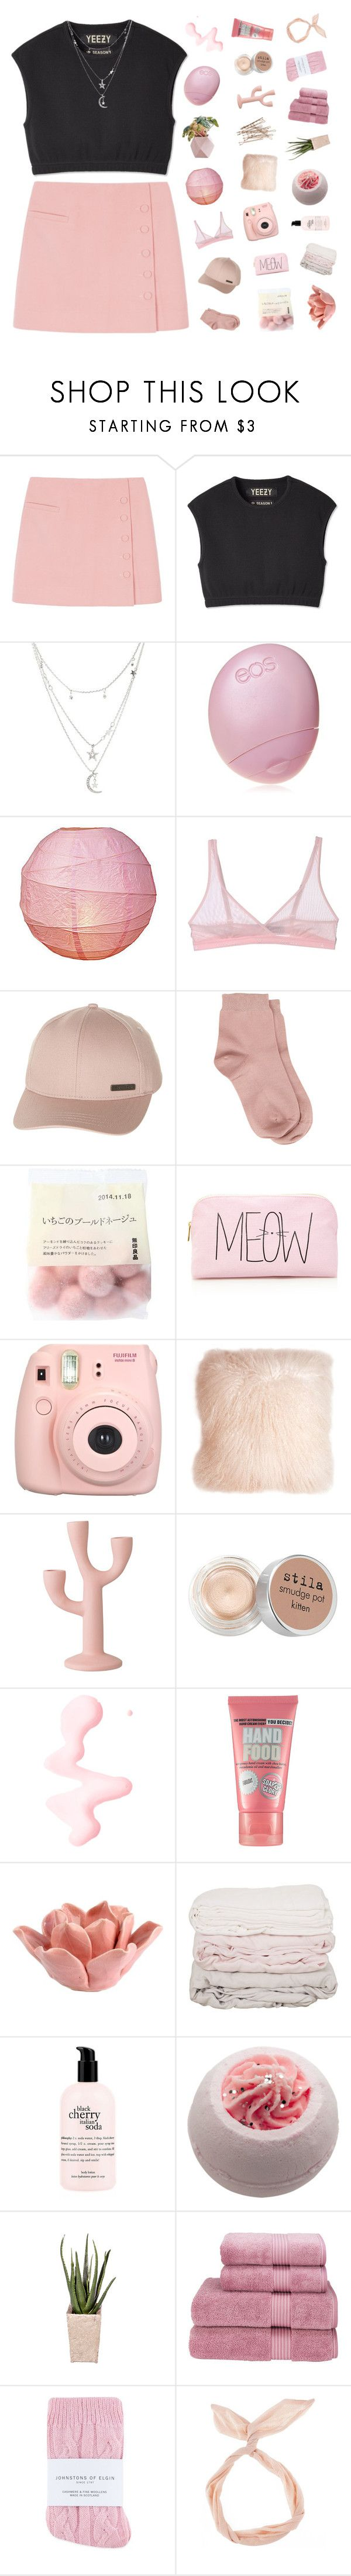 """""""i love playing these games until my heart bleeds"""" by lostmyheadd ❤ liked on Polyvore featuring Yeezy by Kanye West, Charlotte Russe, Eos, Cosabella, Billabong, Maria La Rosa, Forever 21, Fujifilm, Pillow Decor and Bloomingville"""